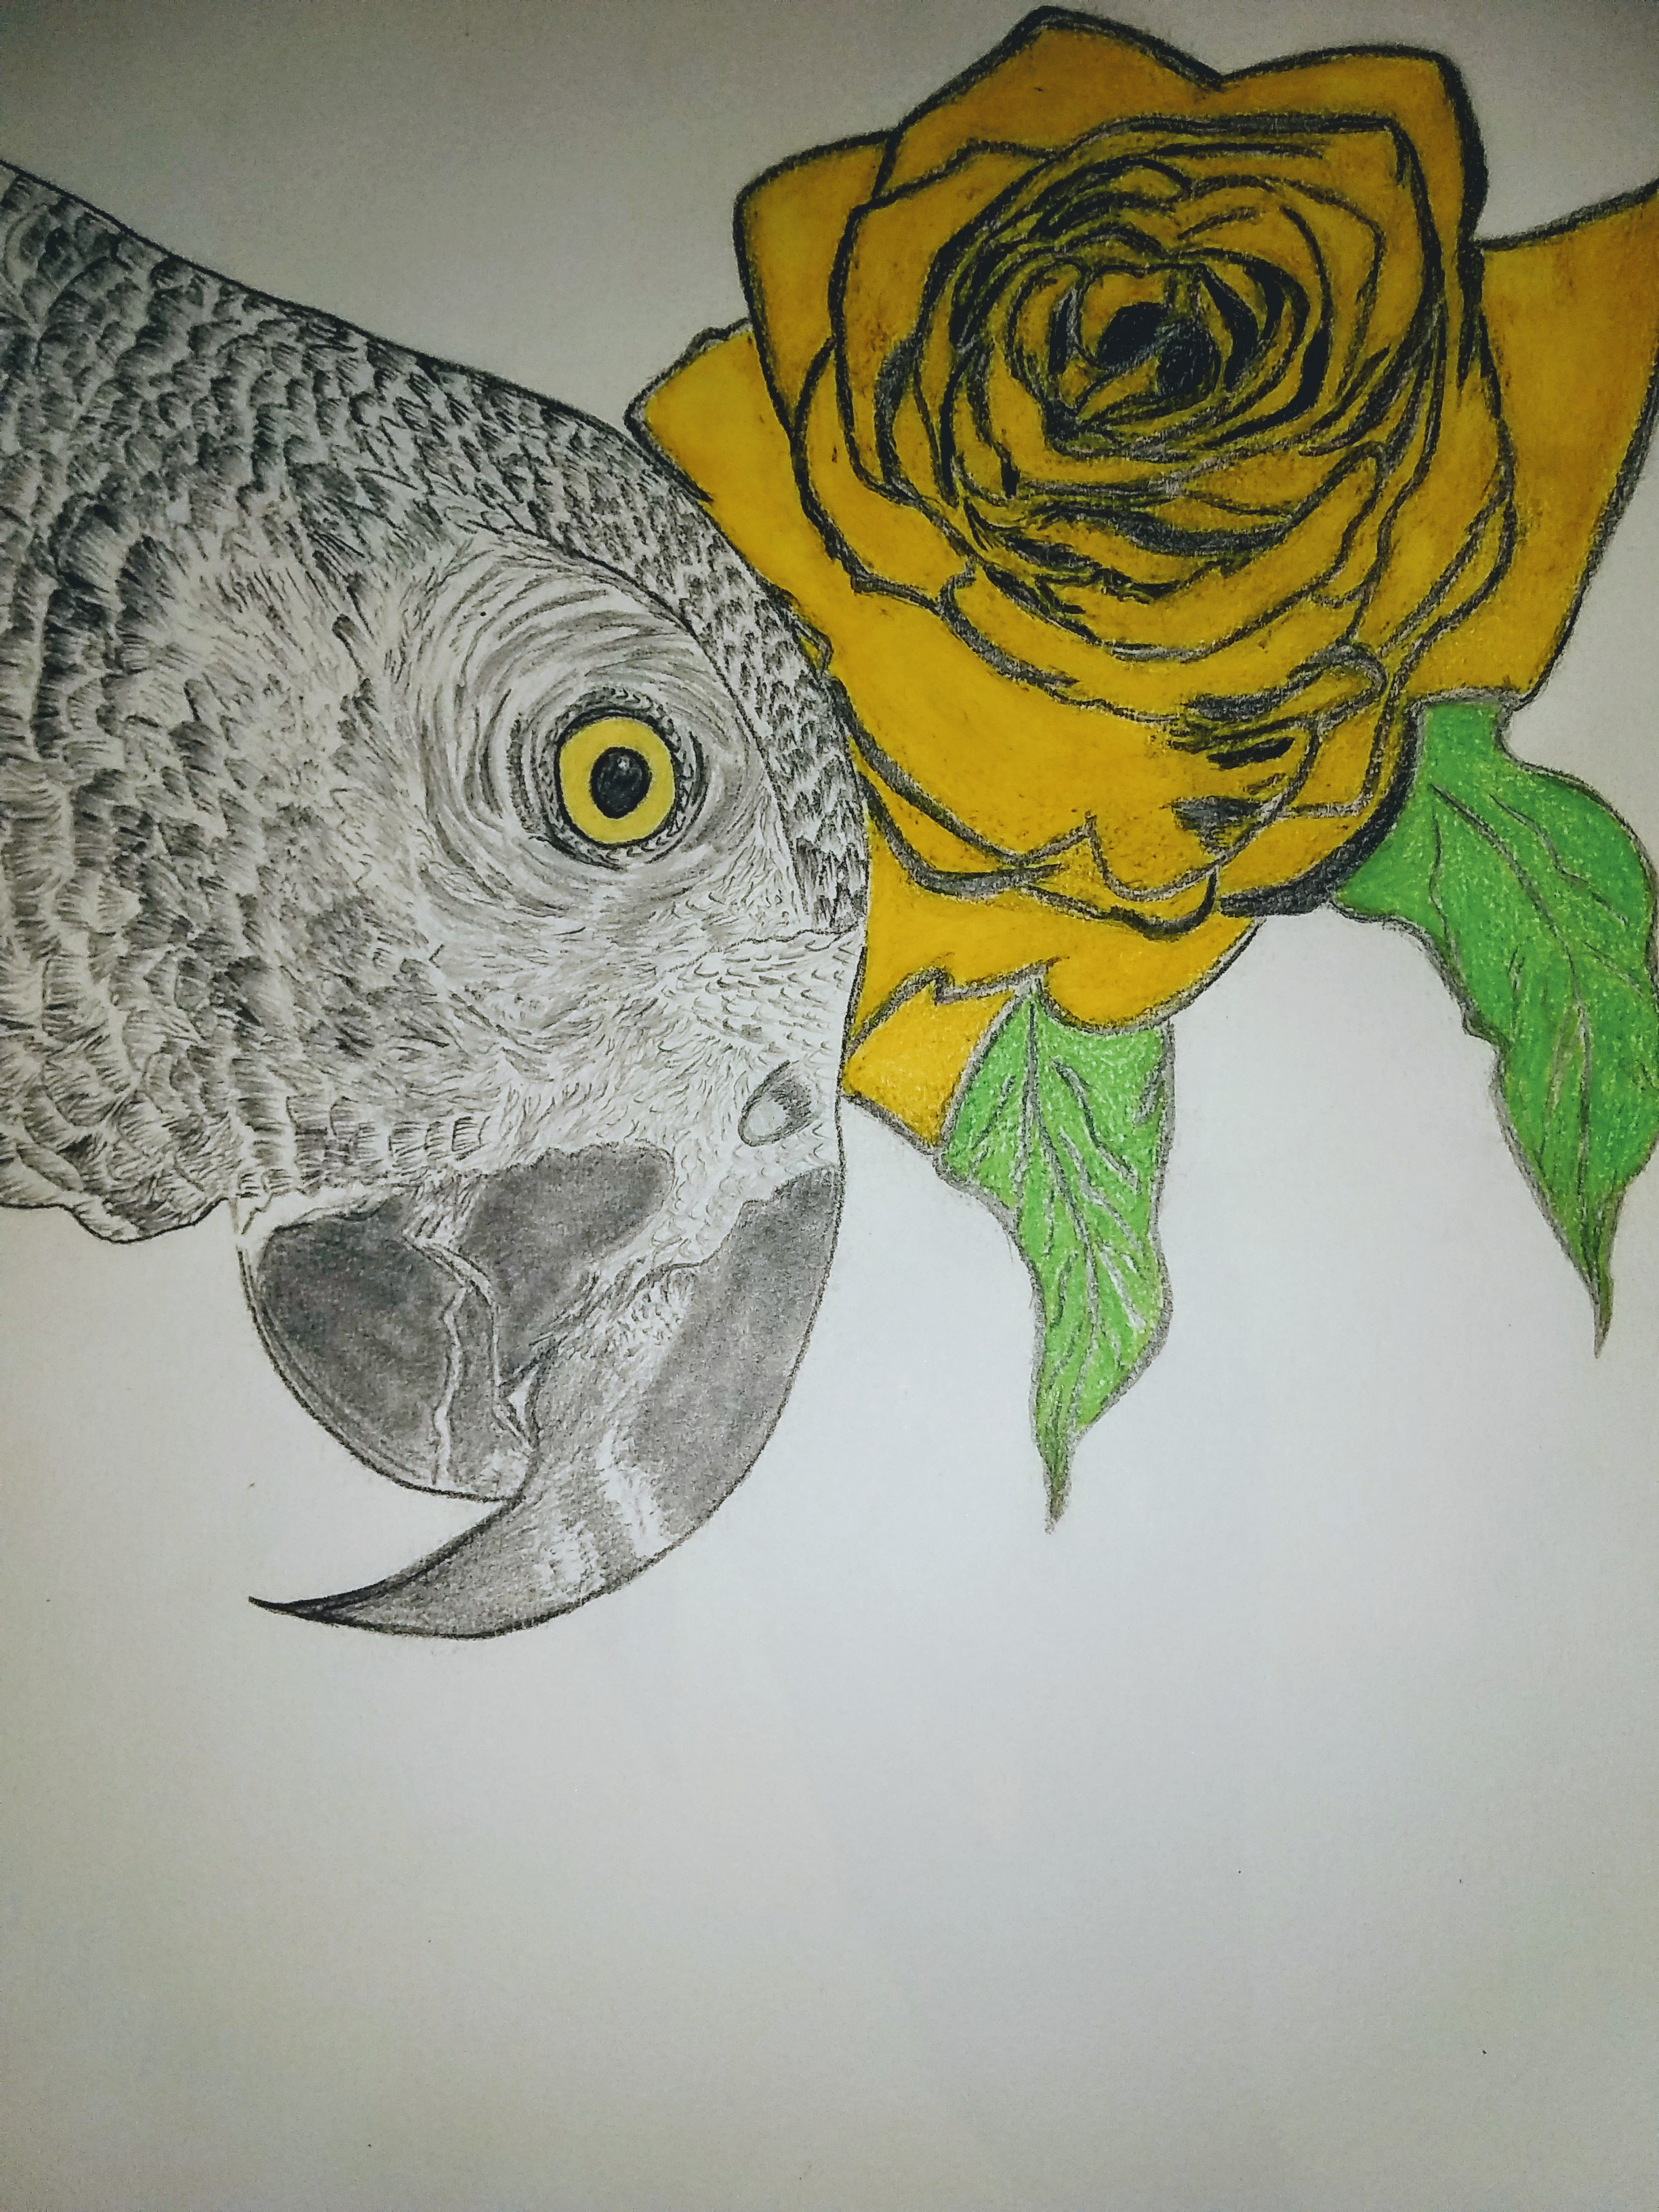 Birds, parrot, wildlife, drawing, portrait, rose, yellow, pencil, art, modern